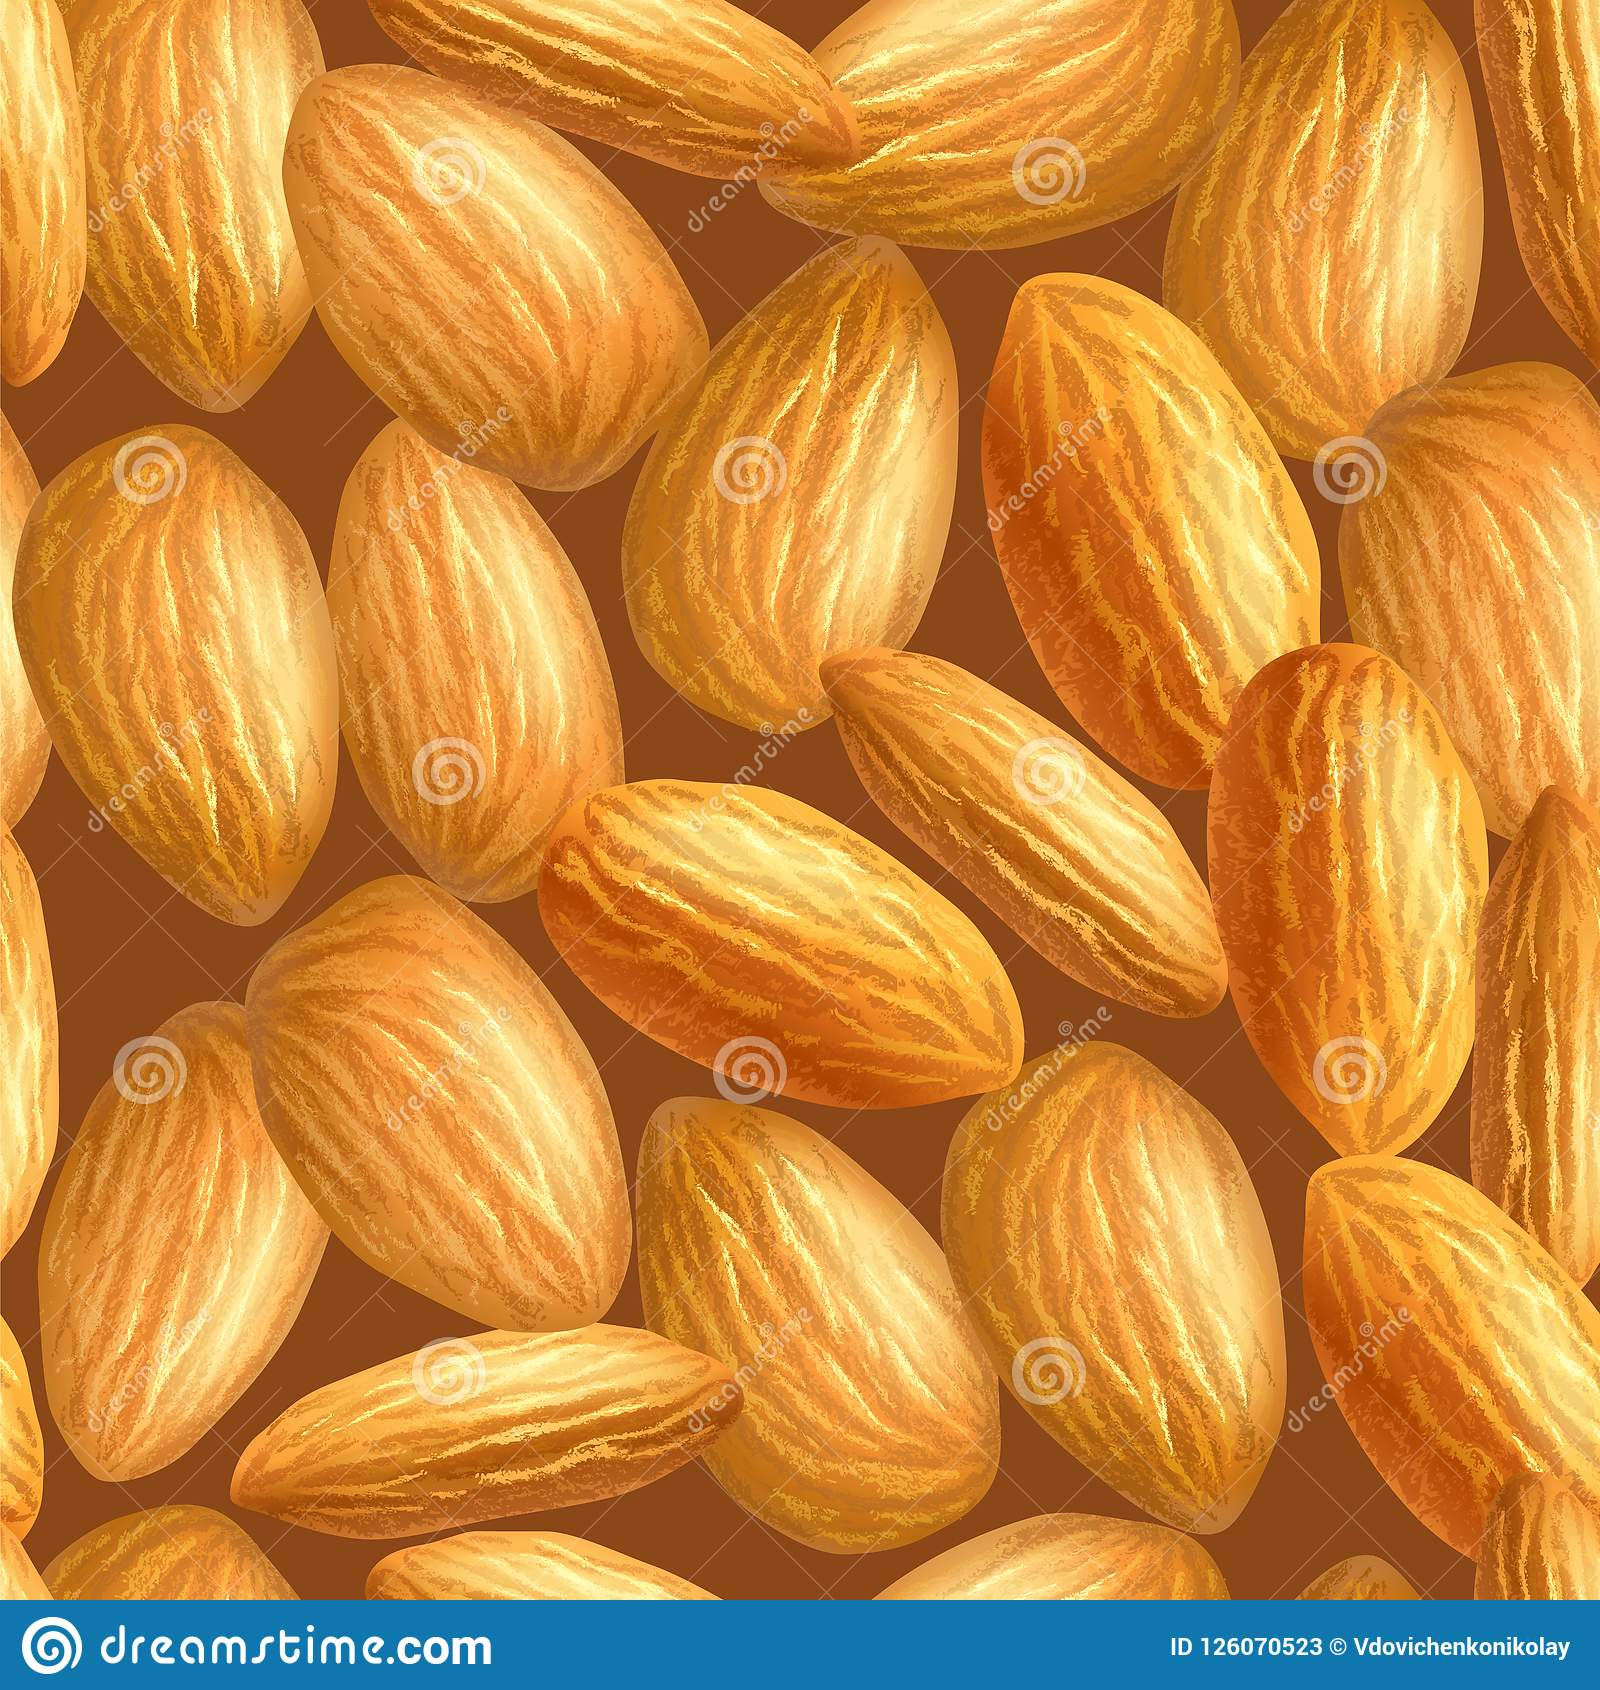 realistic almonds texture. seamless pattern. template for background